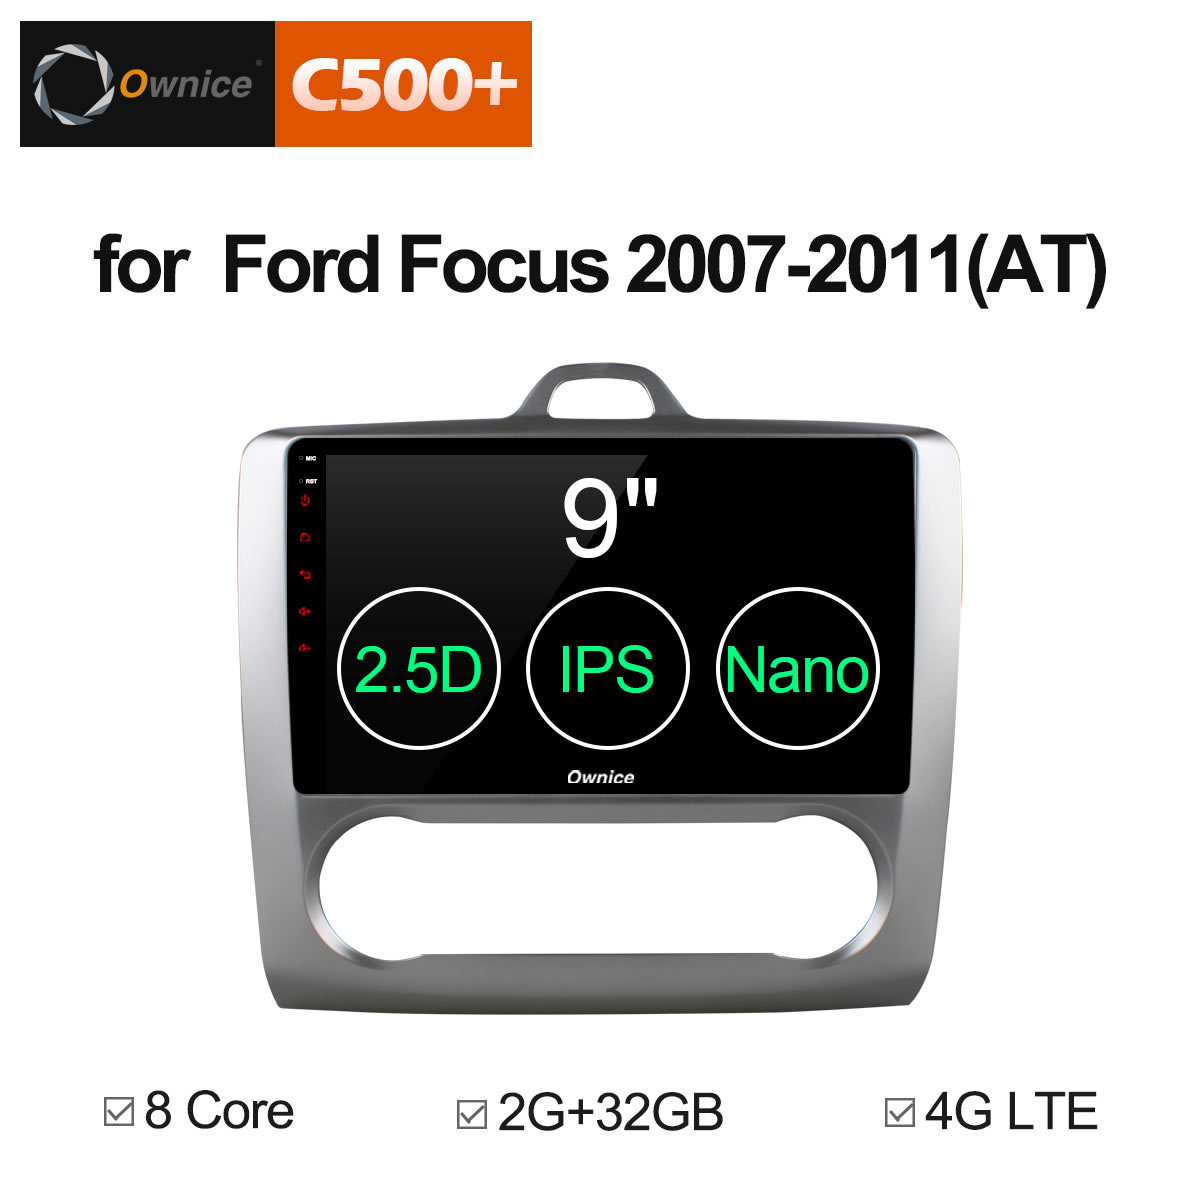 Ownice C500+ G10 Android 8.1 Octa 8 Core 2G RAM For Ford FOCUS 2007 2008 2009 2010 2011 Car Radio DVD Navi GPS Support 4G LTE 10 1 ownice c500 g10 octa 8 core android 8 1 car dvd gps player for toyota tundra 2007 2013 sequoia 2008 2018 stereo radio